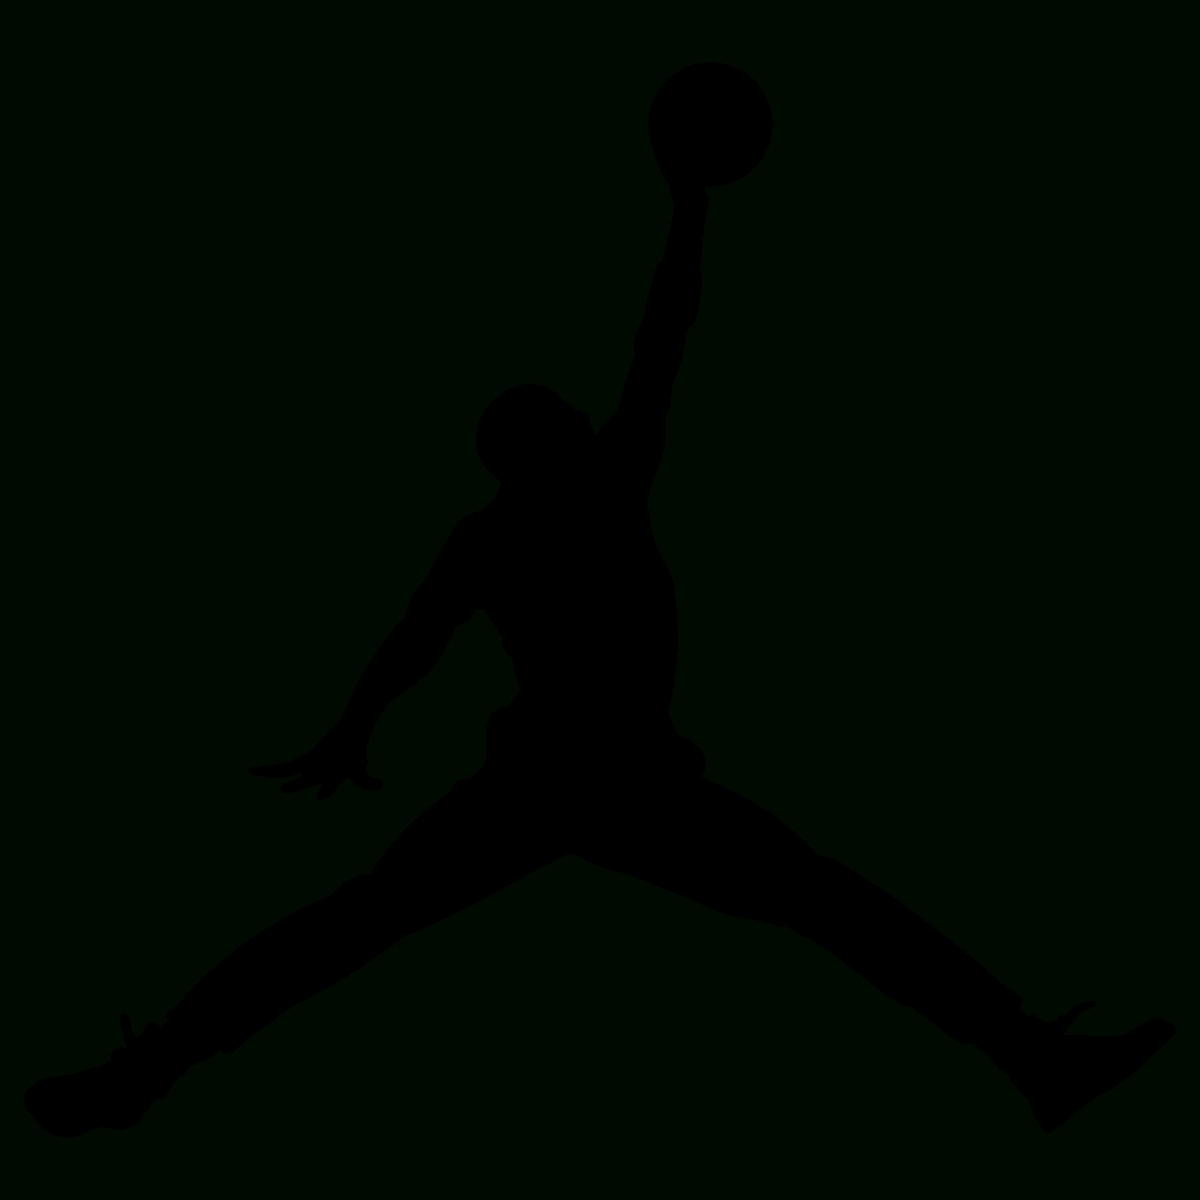 jumpman (logo) - wikipedia